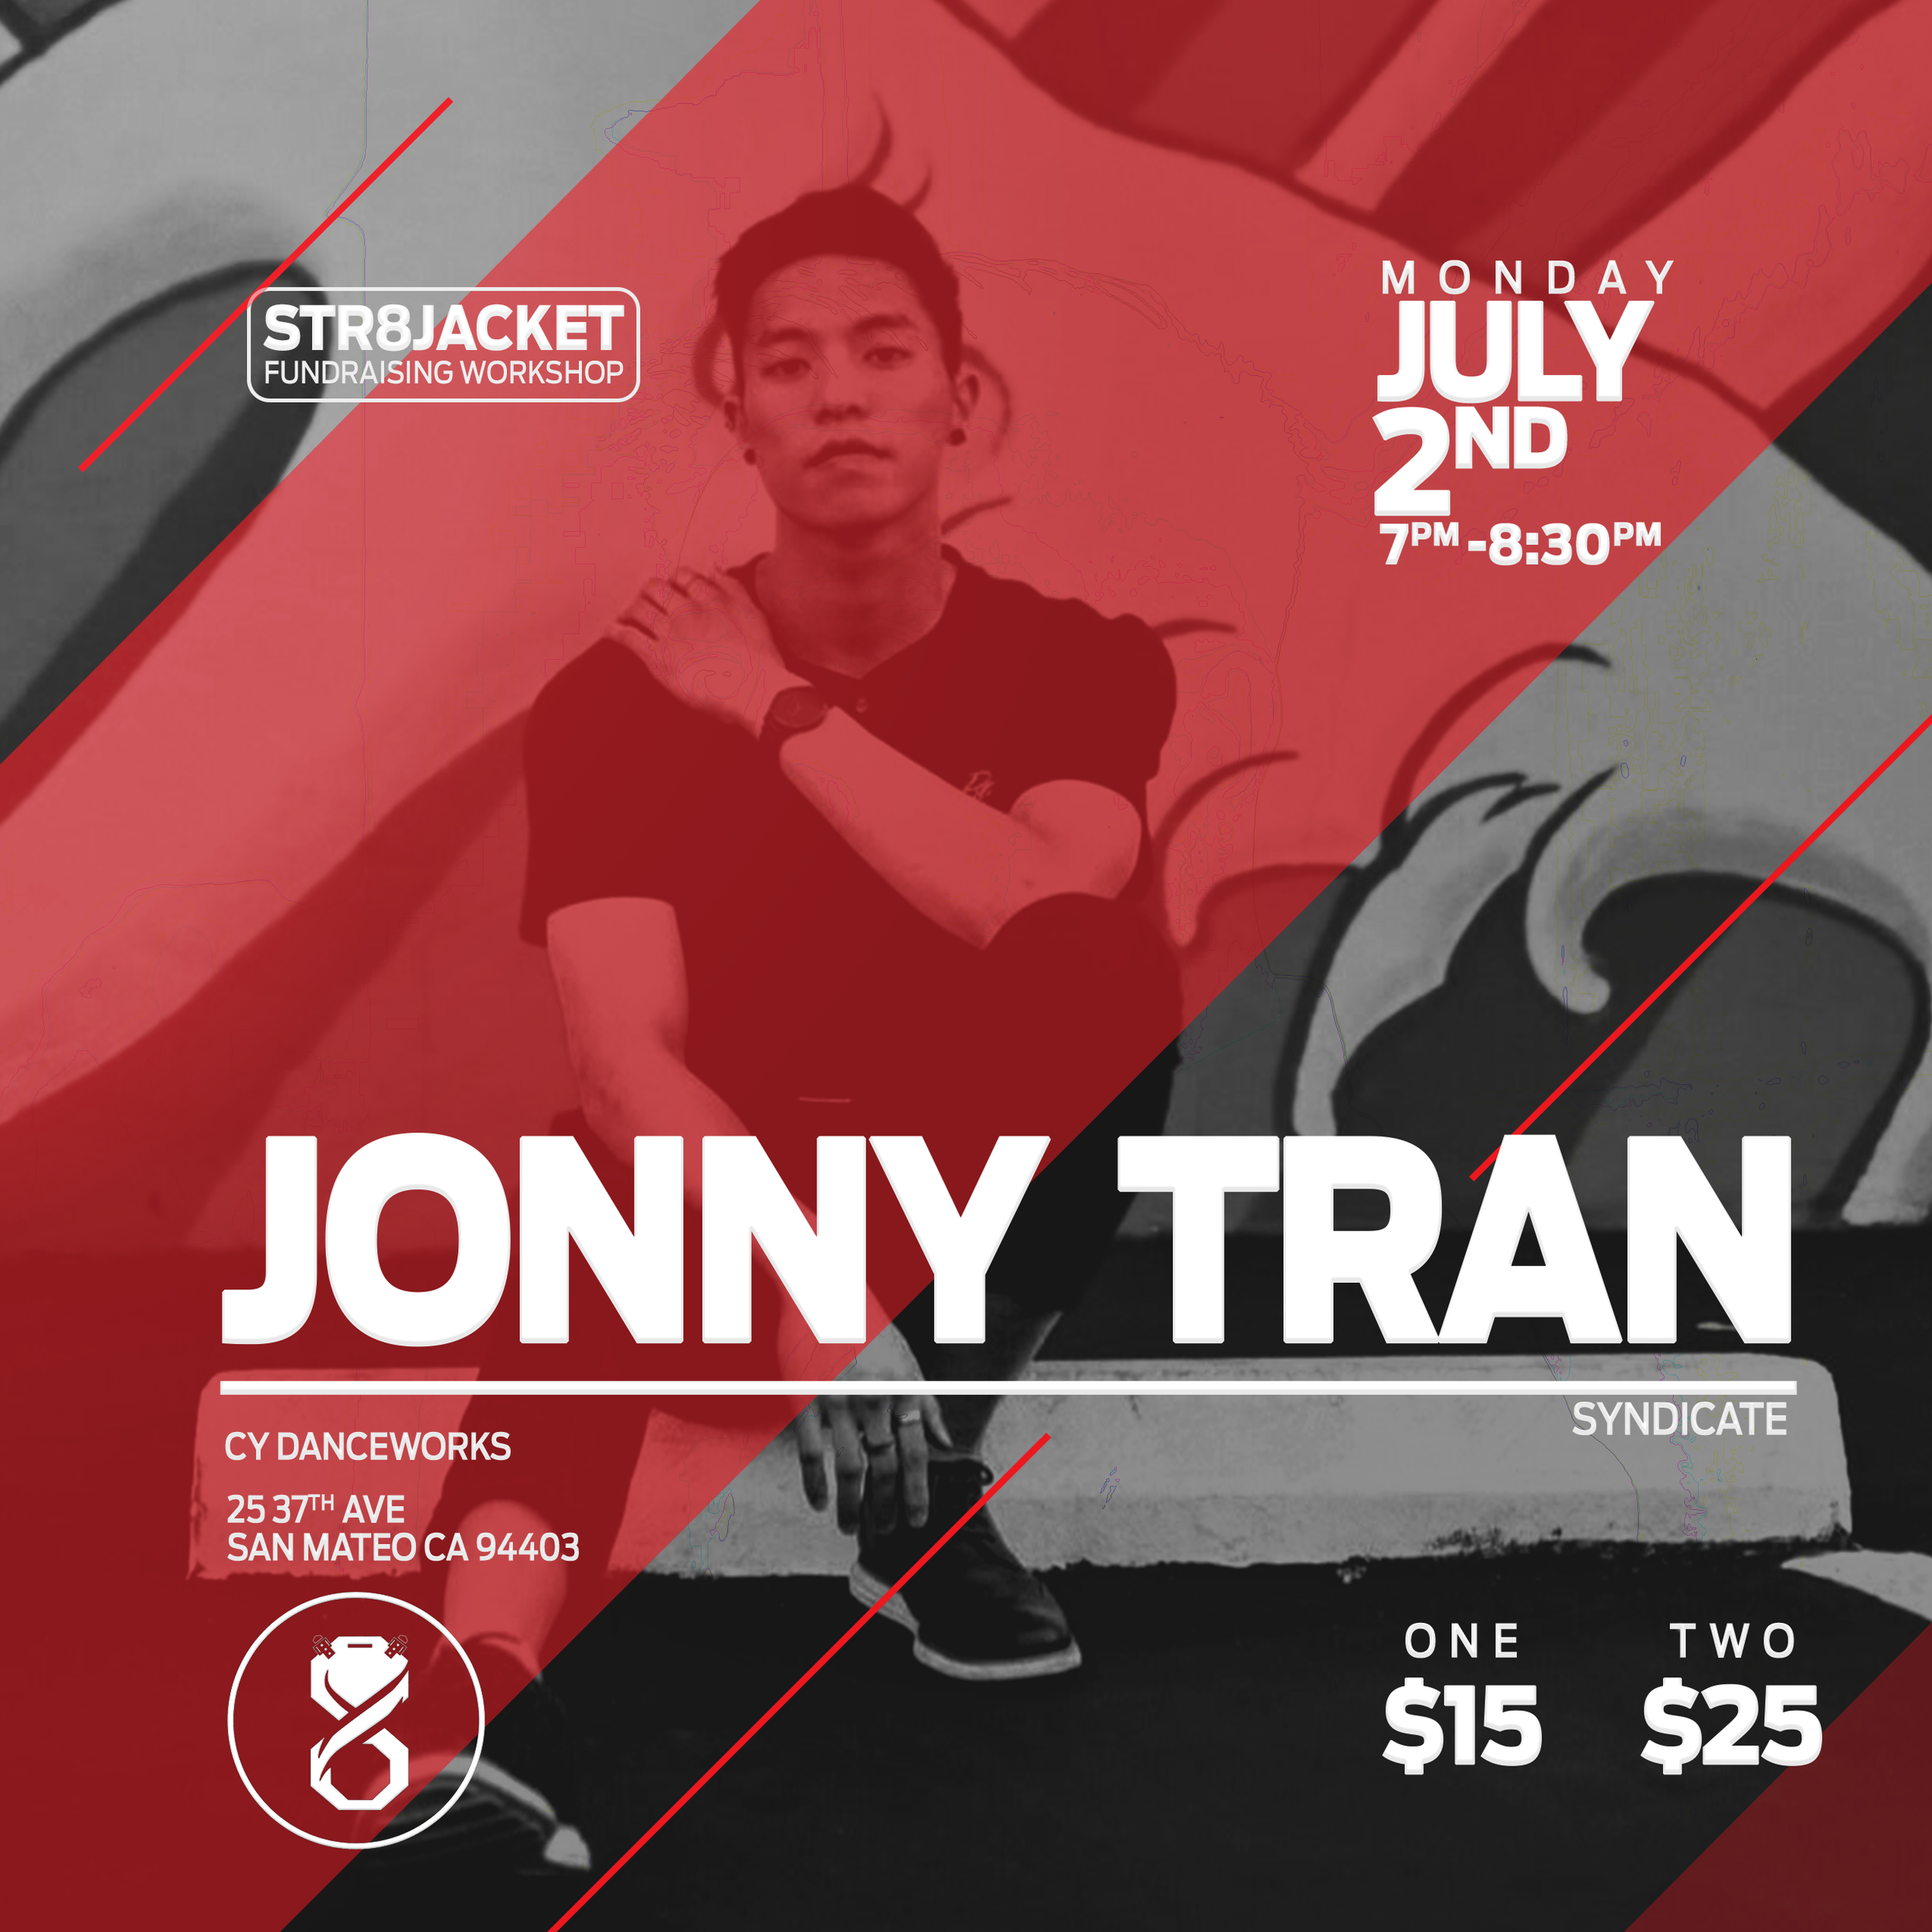 Jonny Tran Workshop | Str8jacket Dance Company